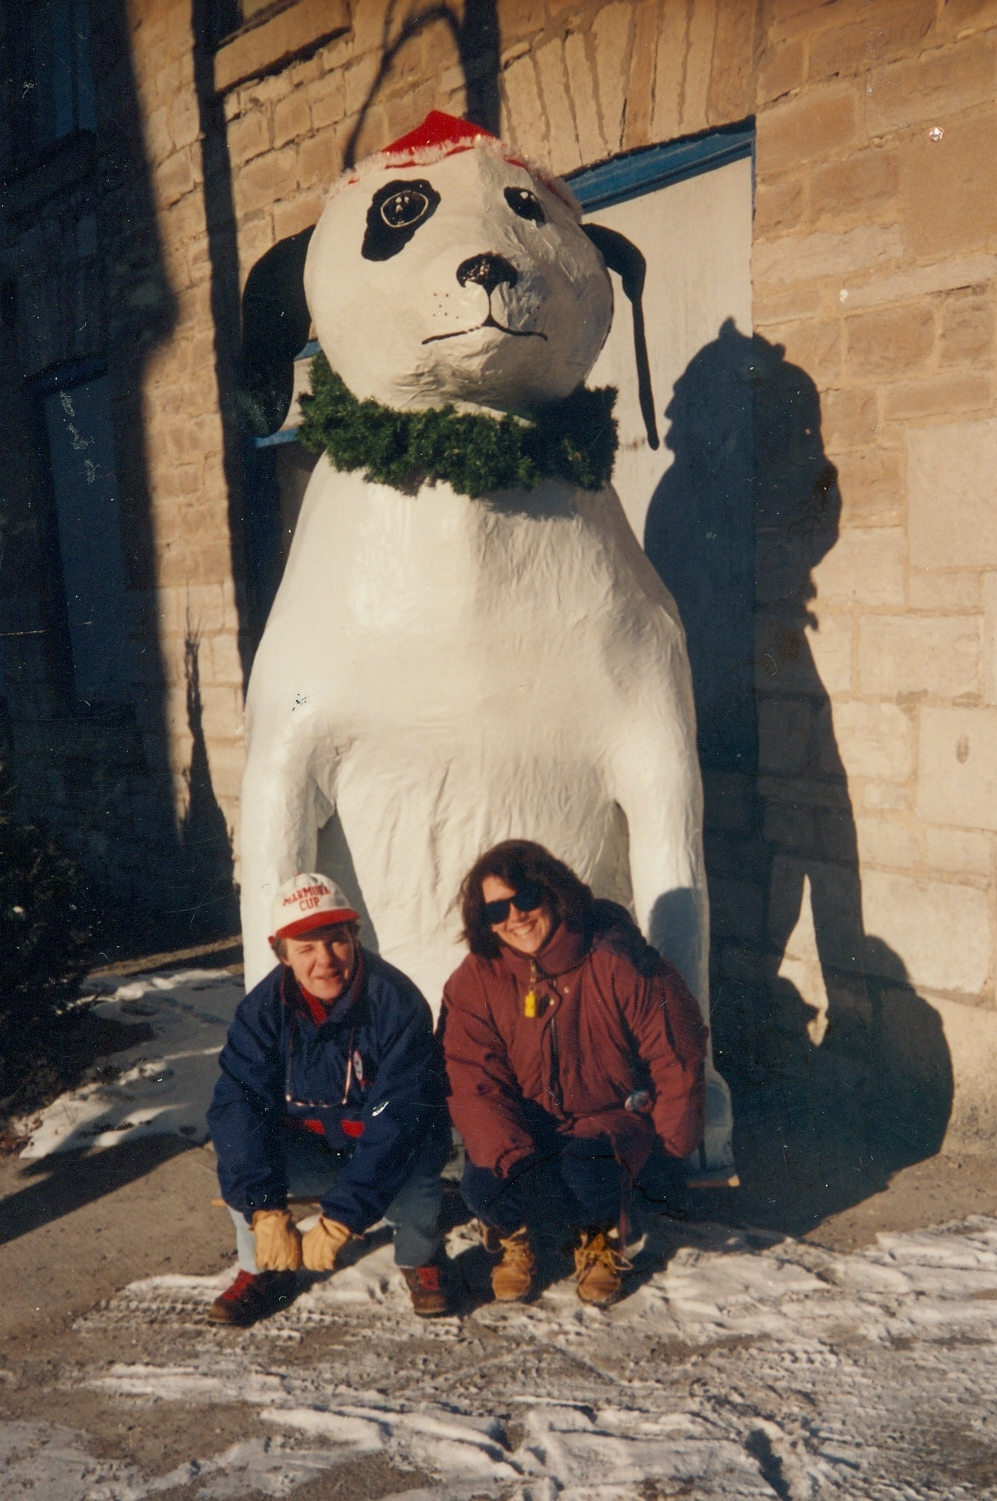 Cathie Jones & Anne Philpot with Snofest Mascot